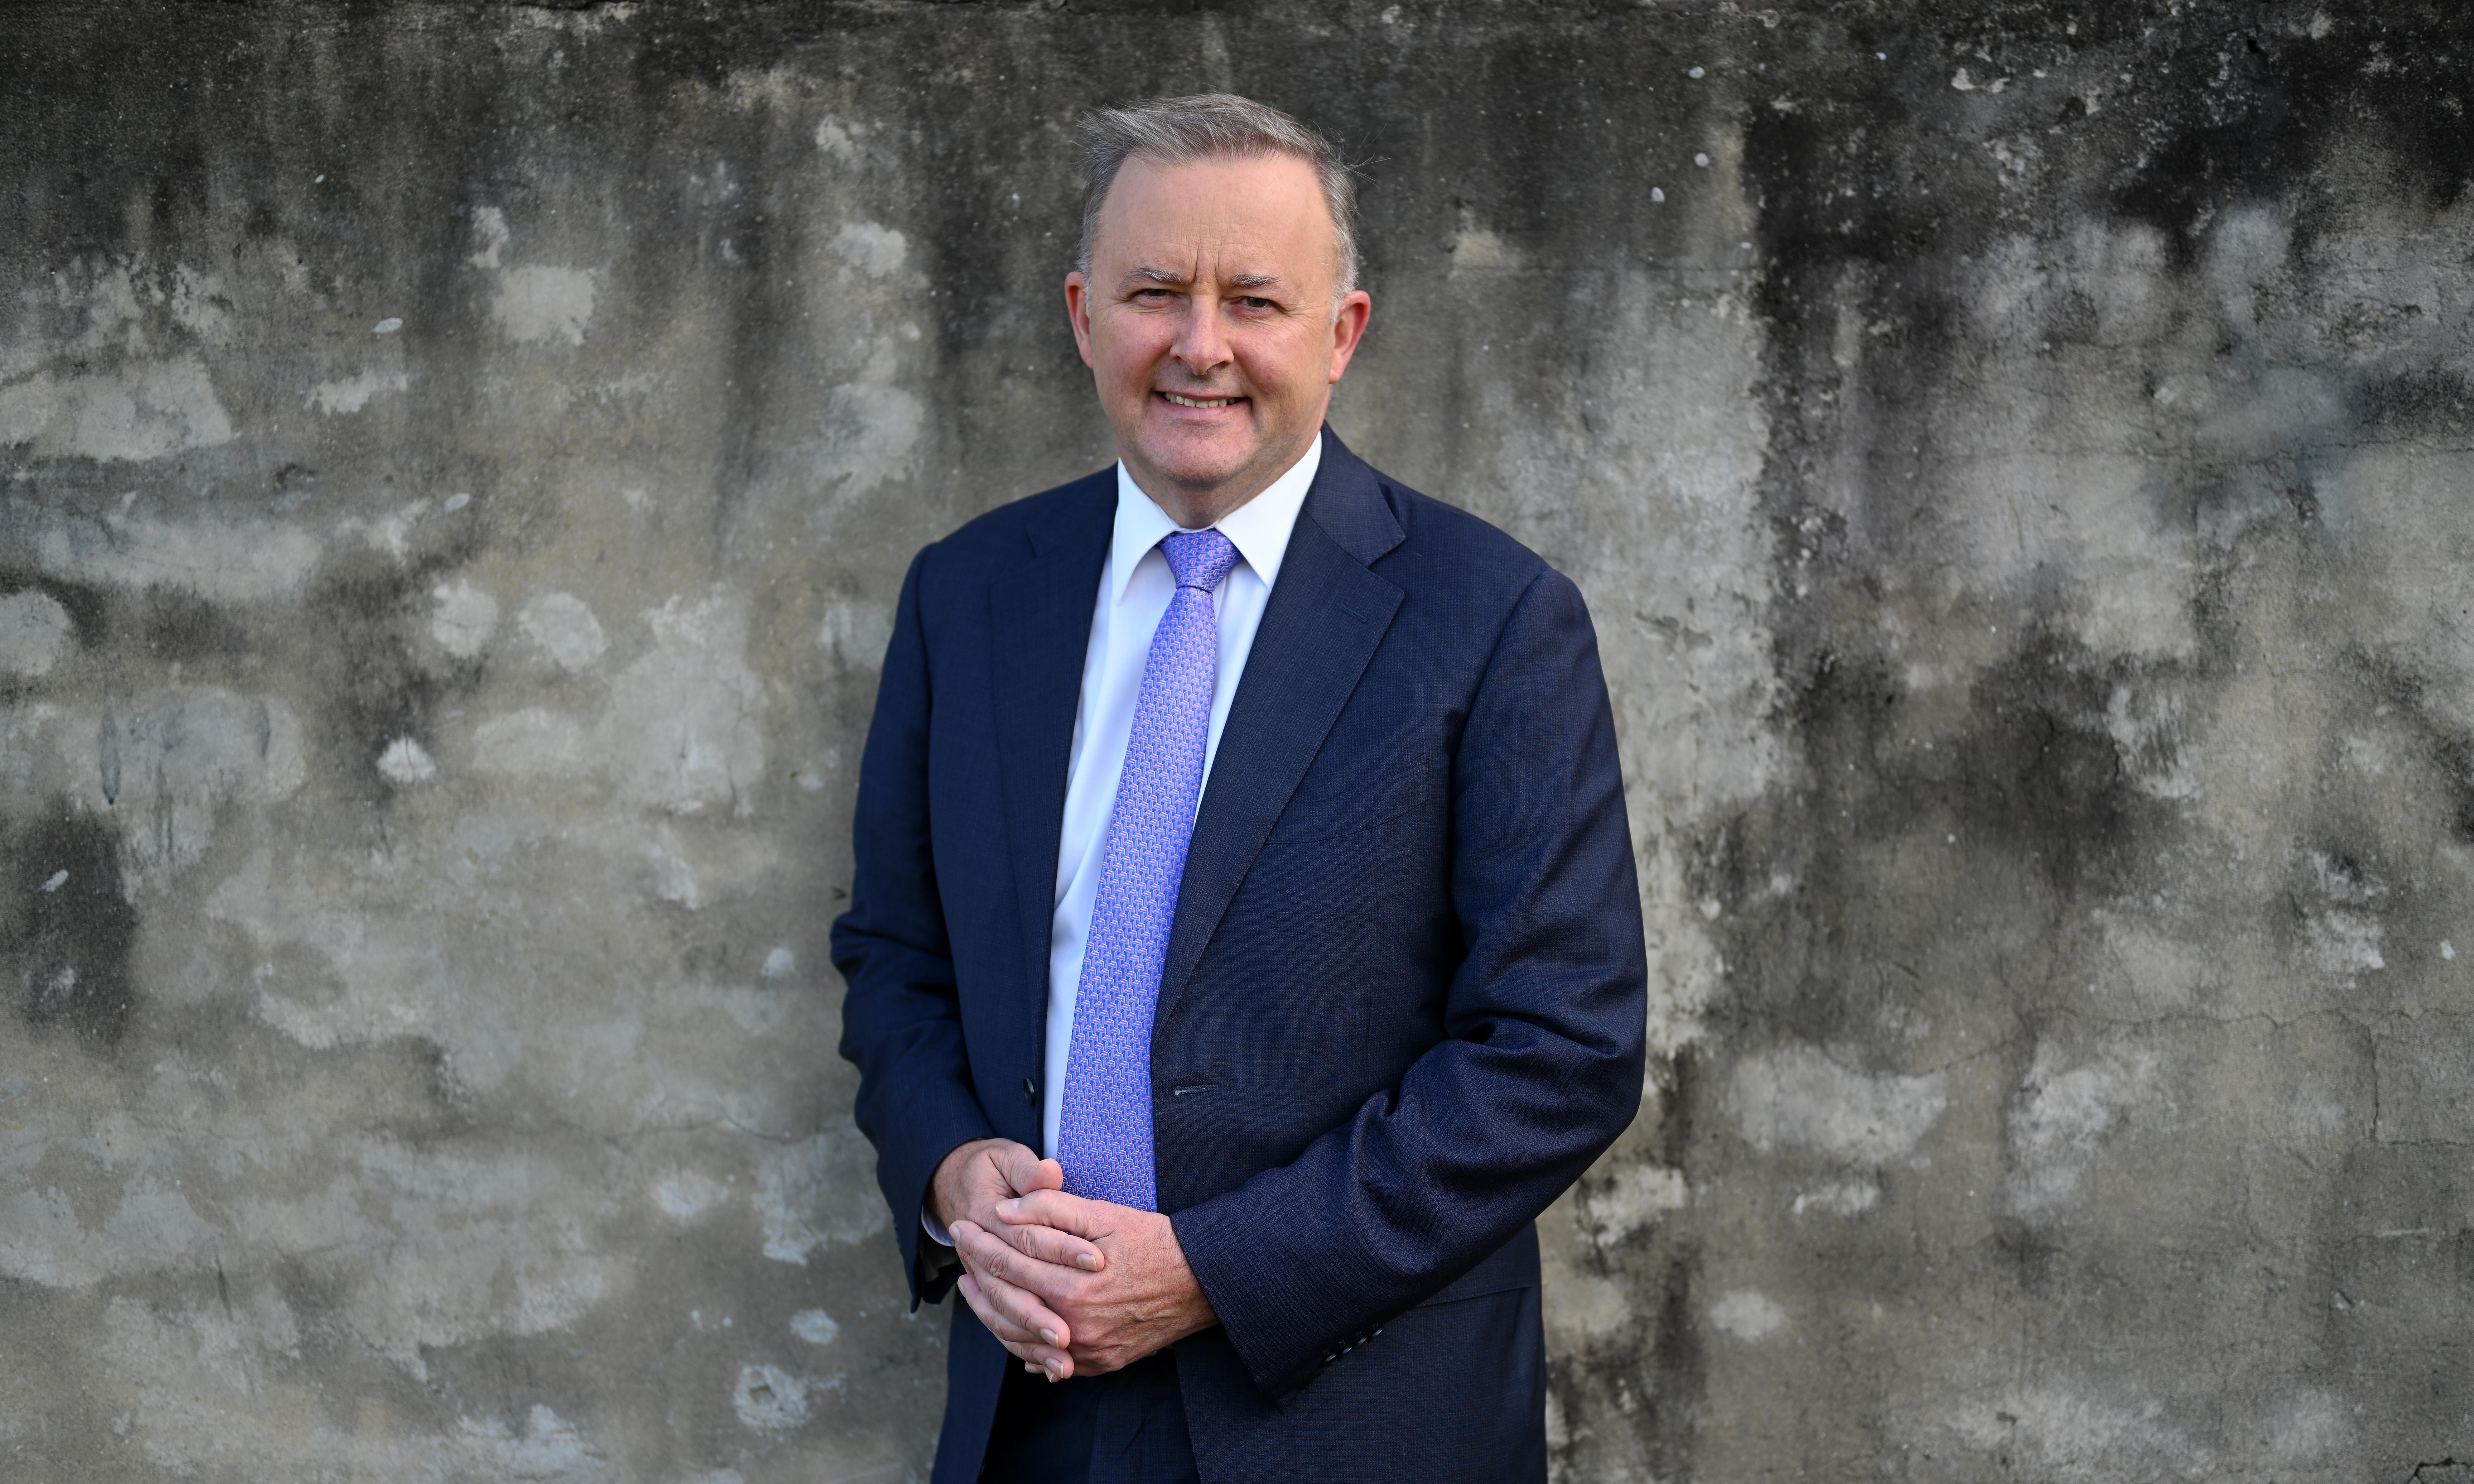 'It's important to talk straight': how Labor turned to Anthony Albanese in its hour of need